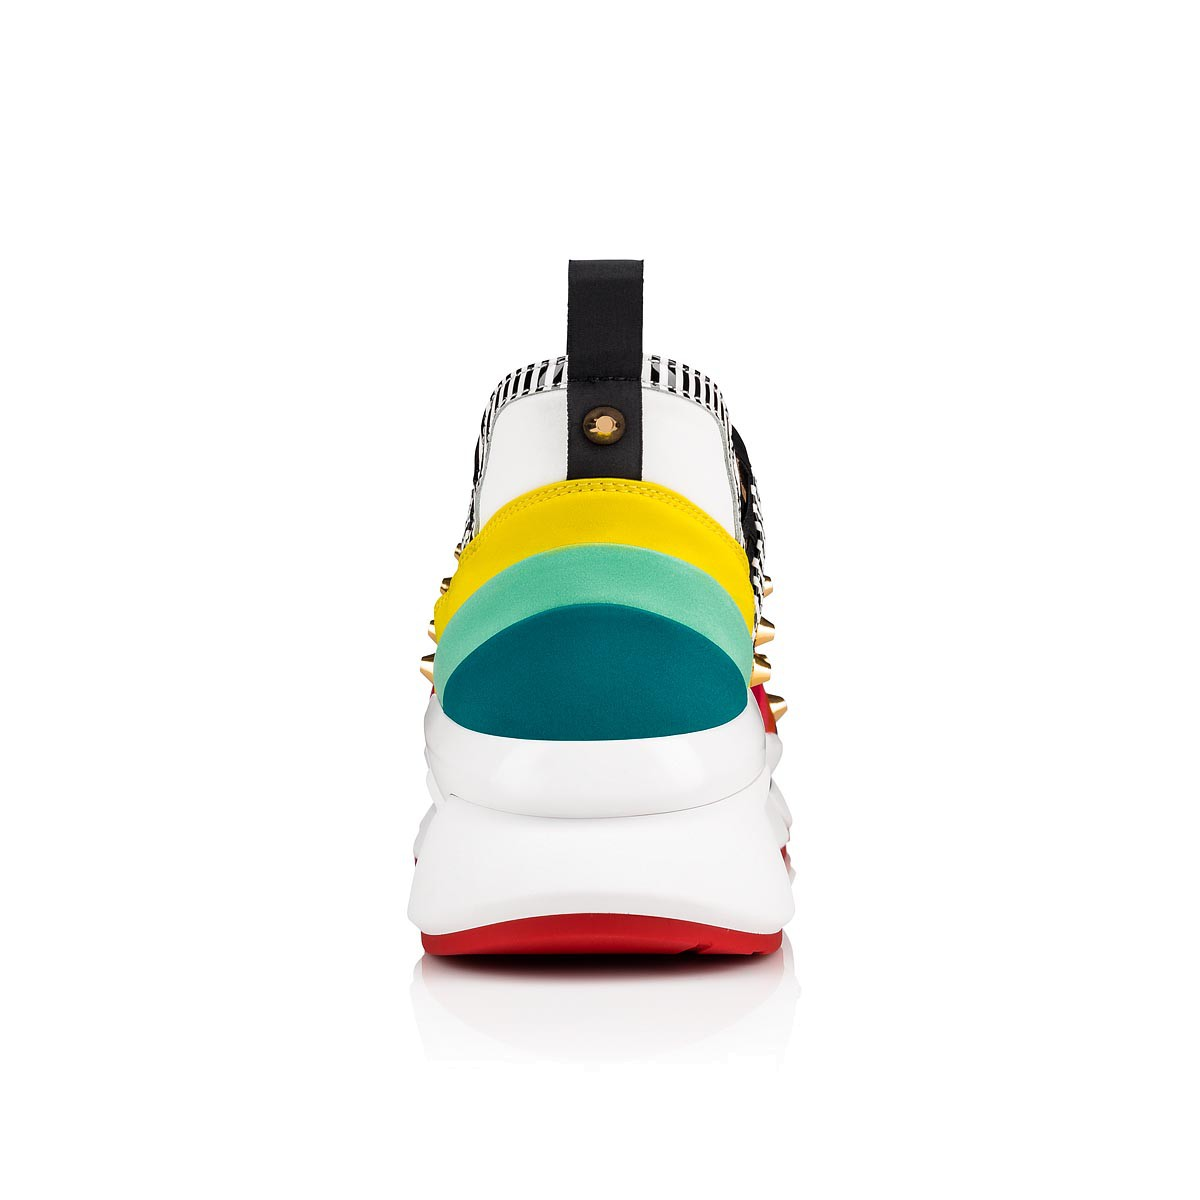 Souliers - 123 Run - Christian Louboutin